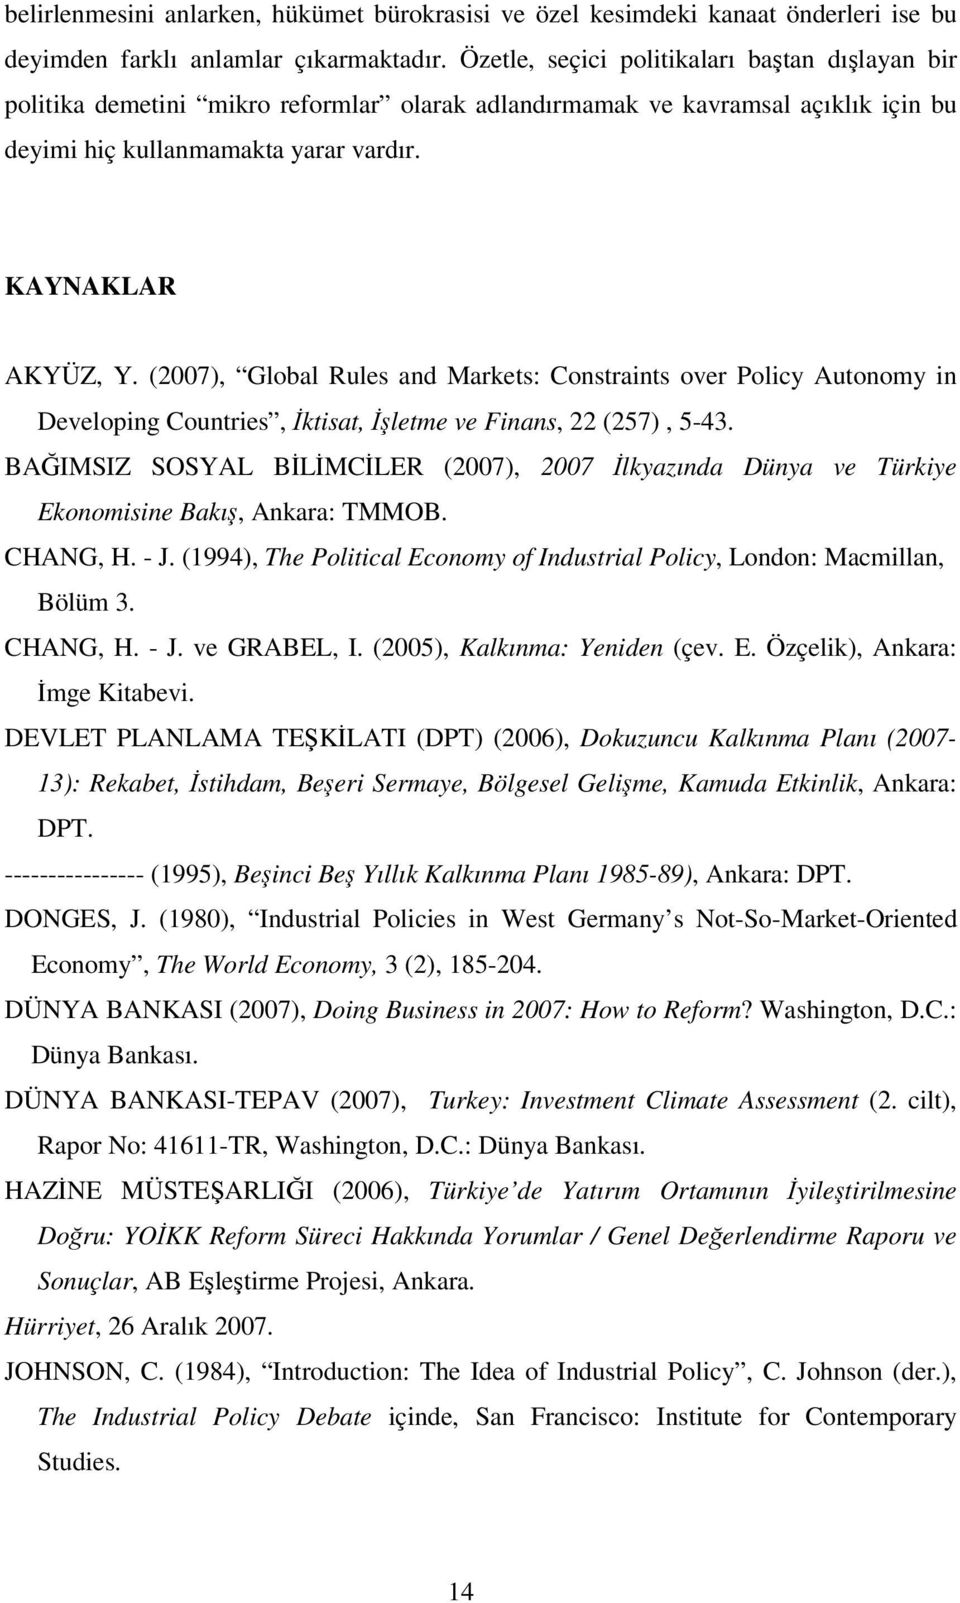 (2007), Global Rules and Markets: Constraints over Policy Autonomy in Developing Countries, ktisat, letme ve Finans, 22 (257), 5-43.